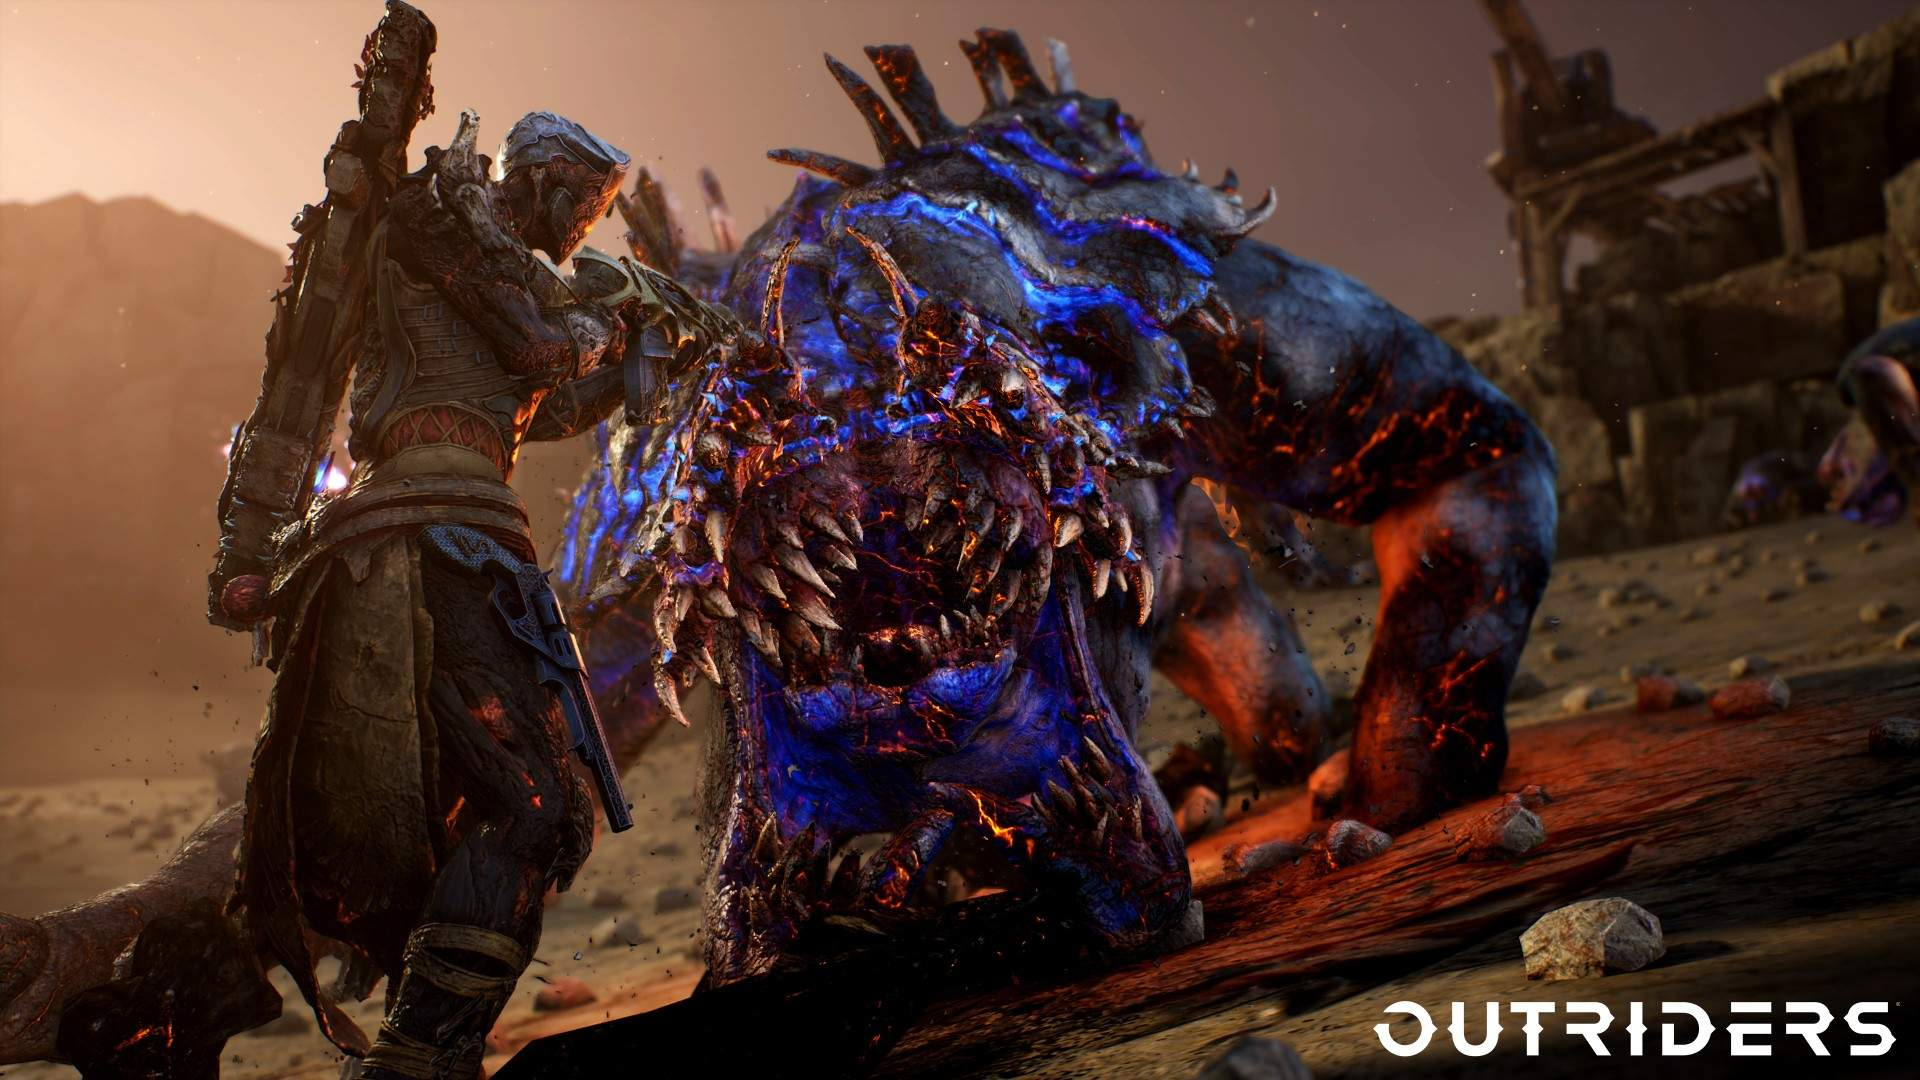 Outriders - XGP on PC Announce